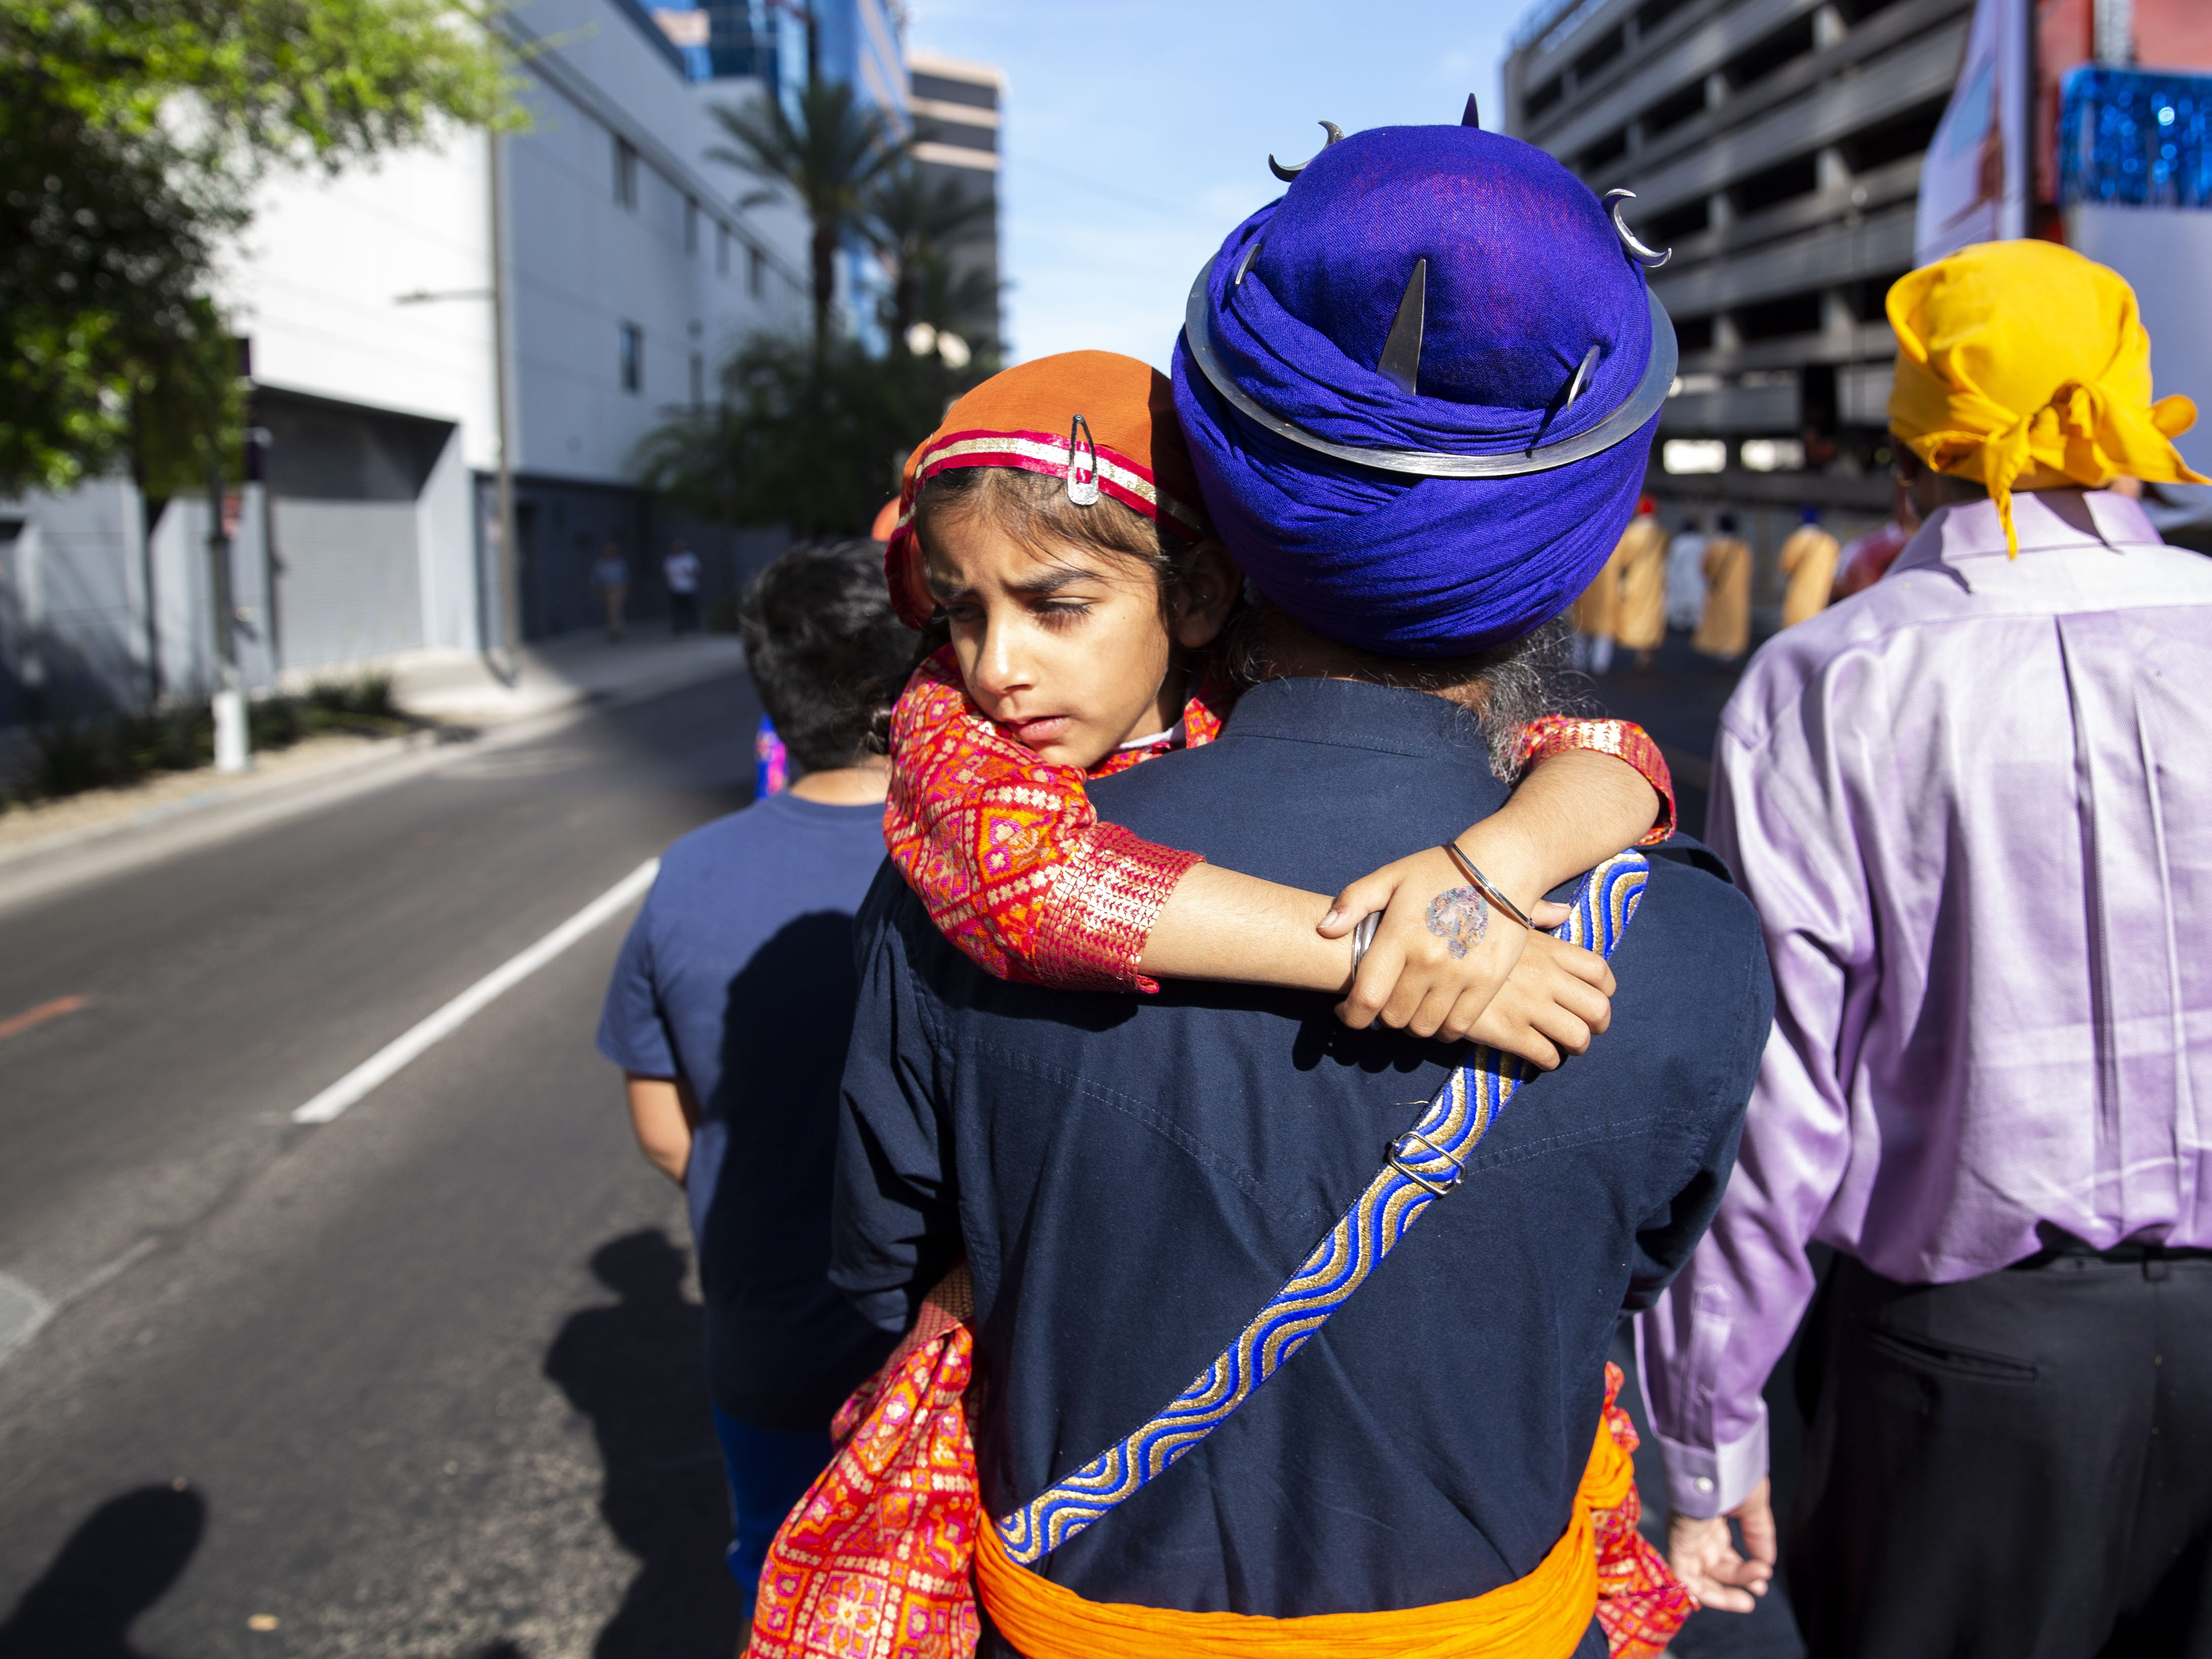 Raman Kaur, 6, clings to her father as he walks with a Nagar Kirtan procession through downtown Phoenix on March 24, 2019.